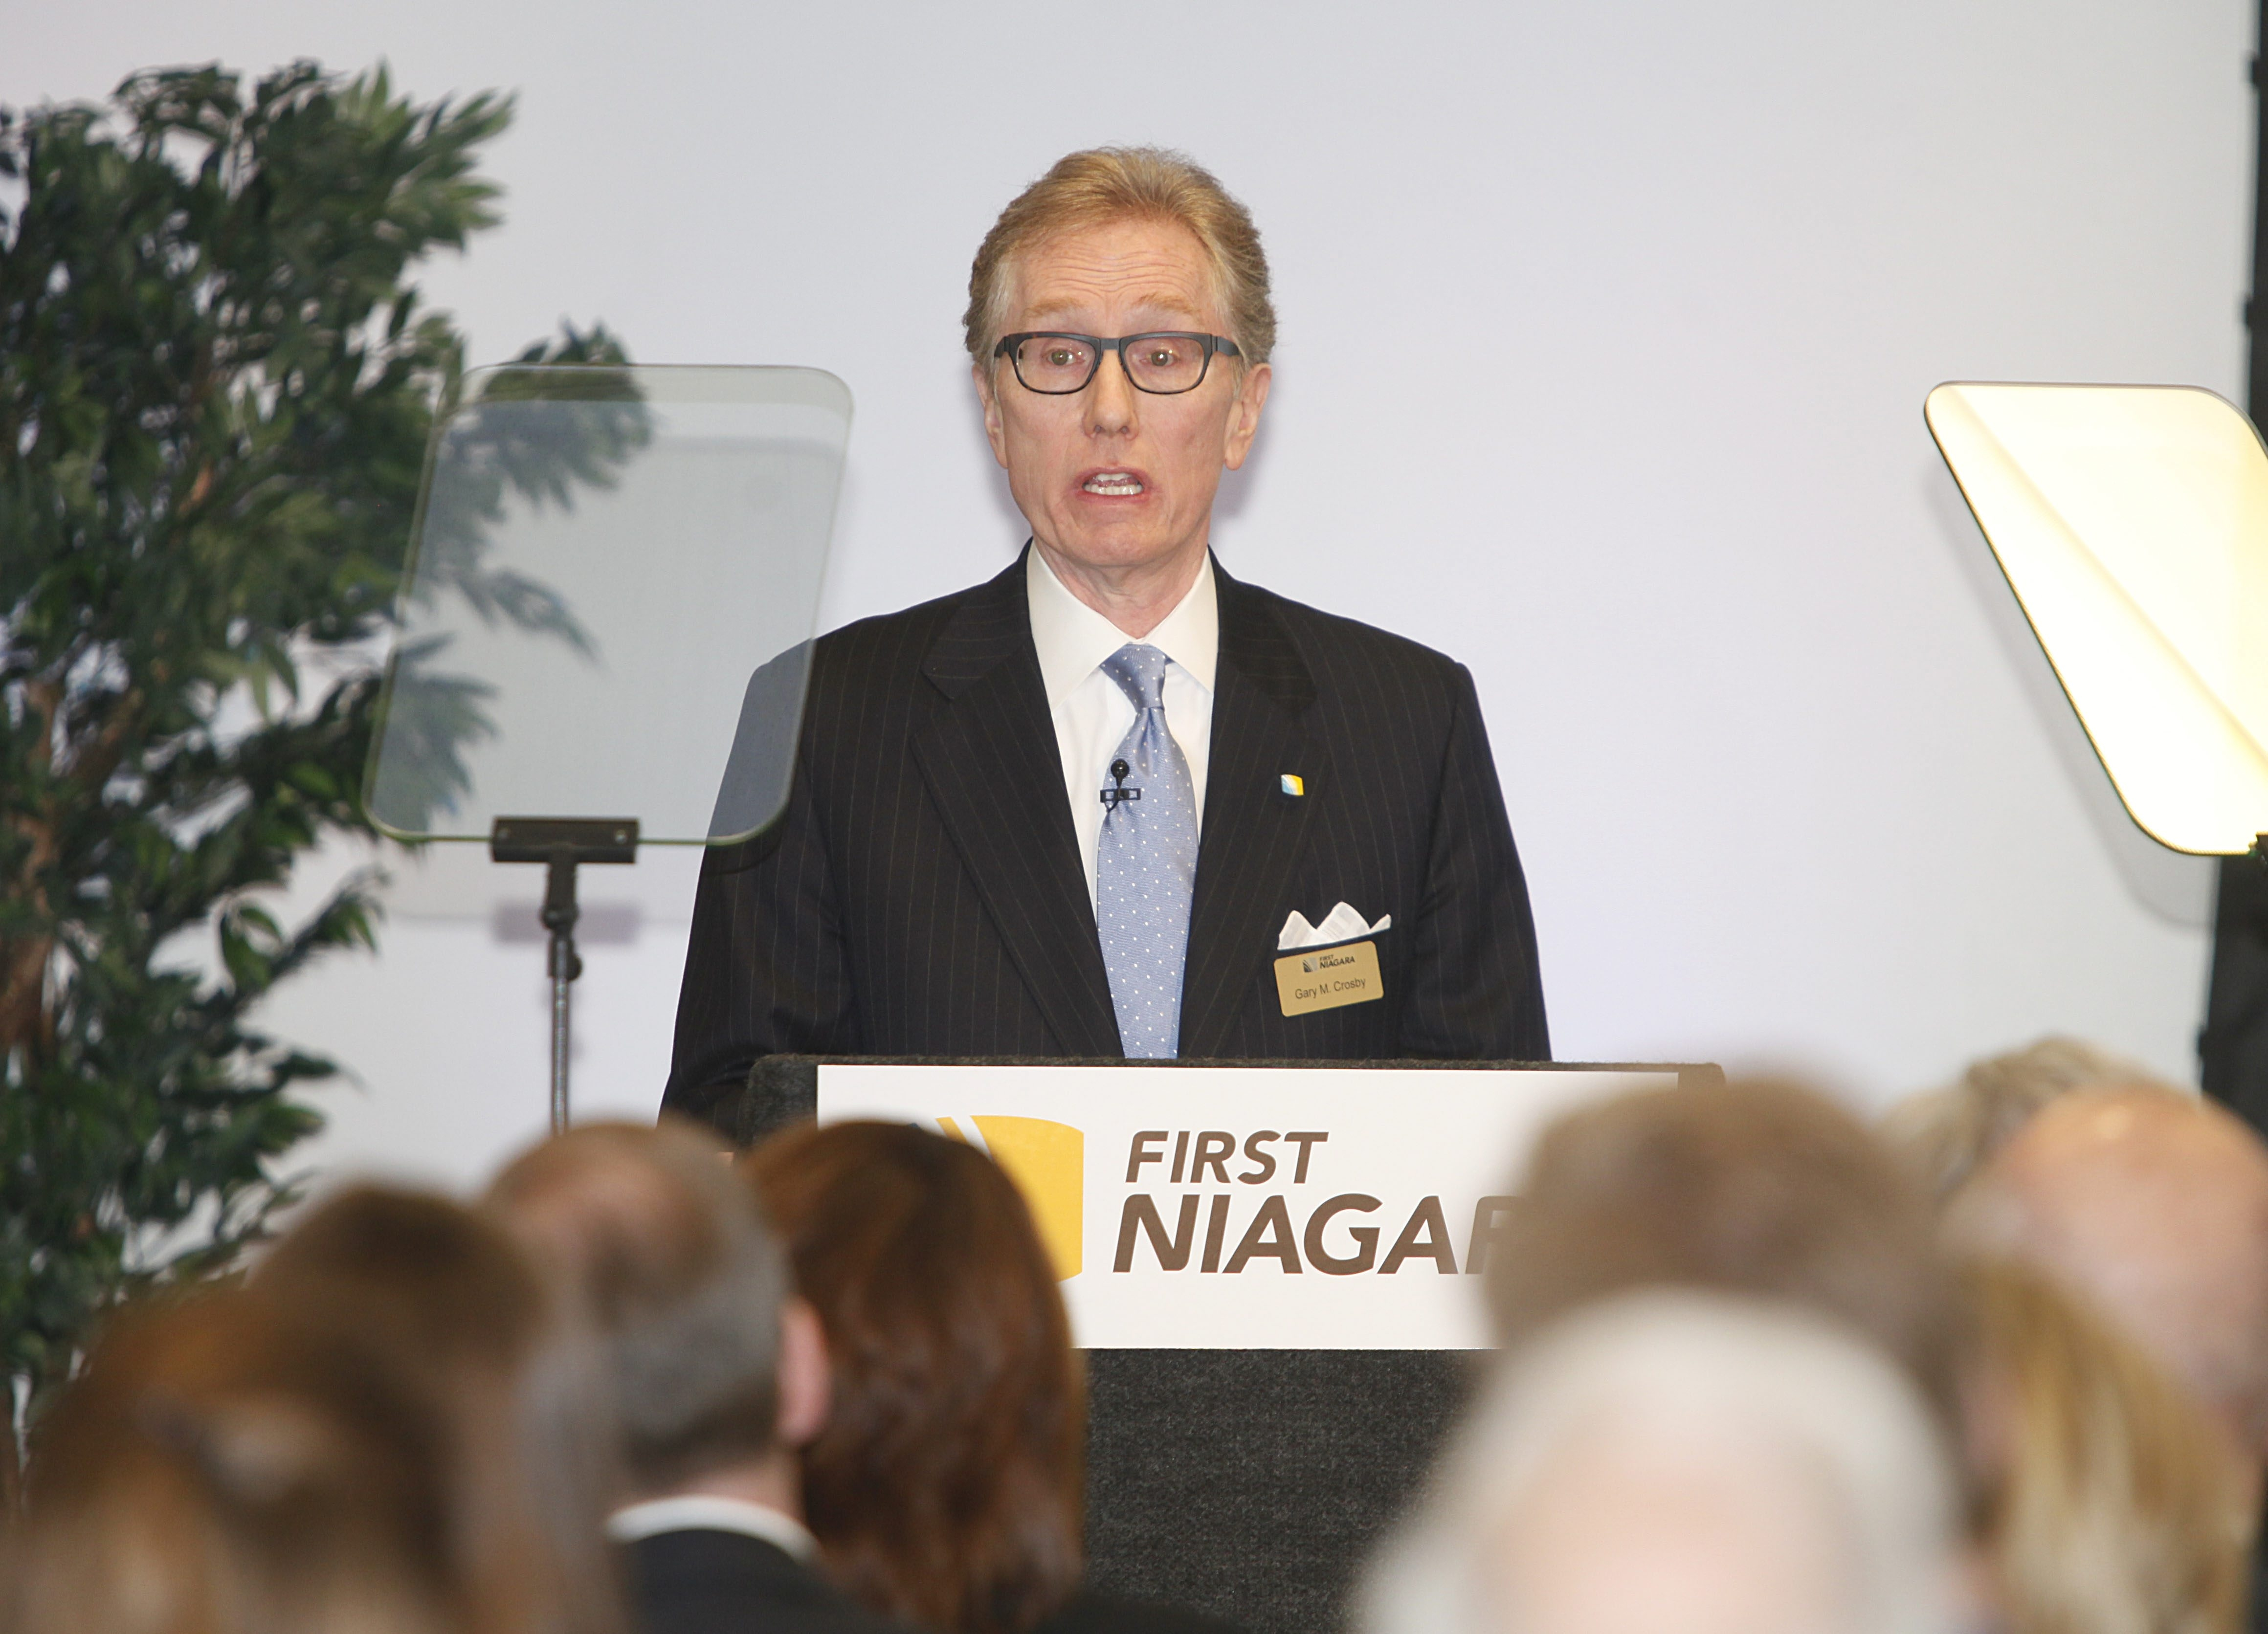 First Niagara CEO Gary Crosby addresses shareholders at its annual meeting Wednesday.